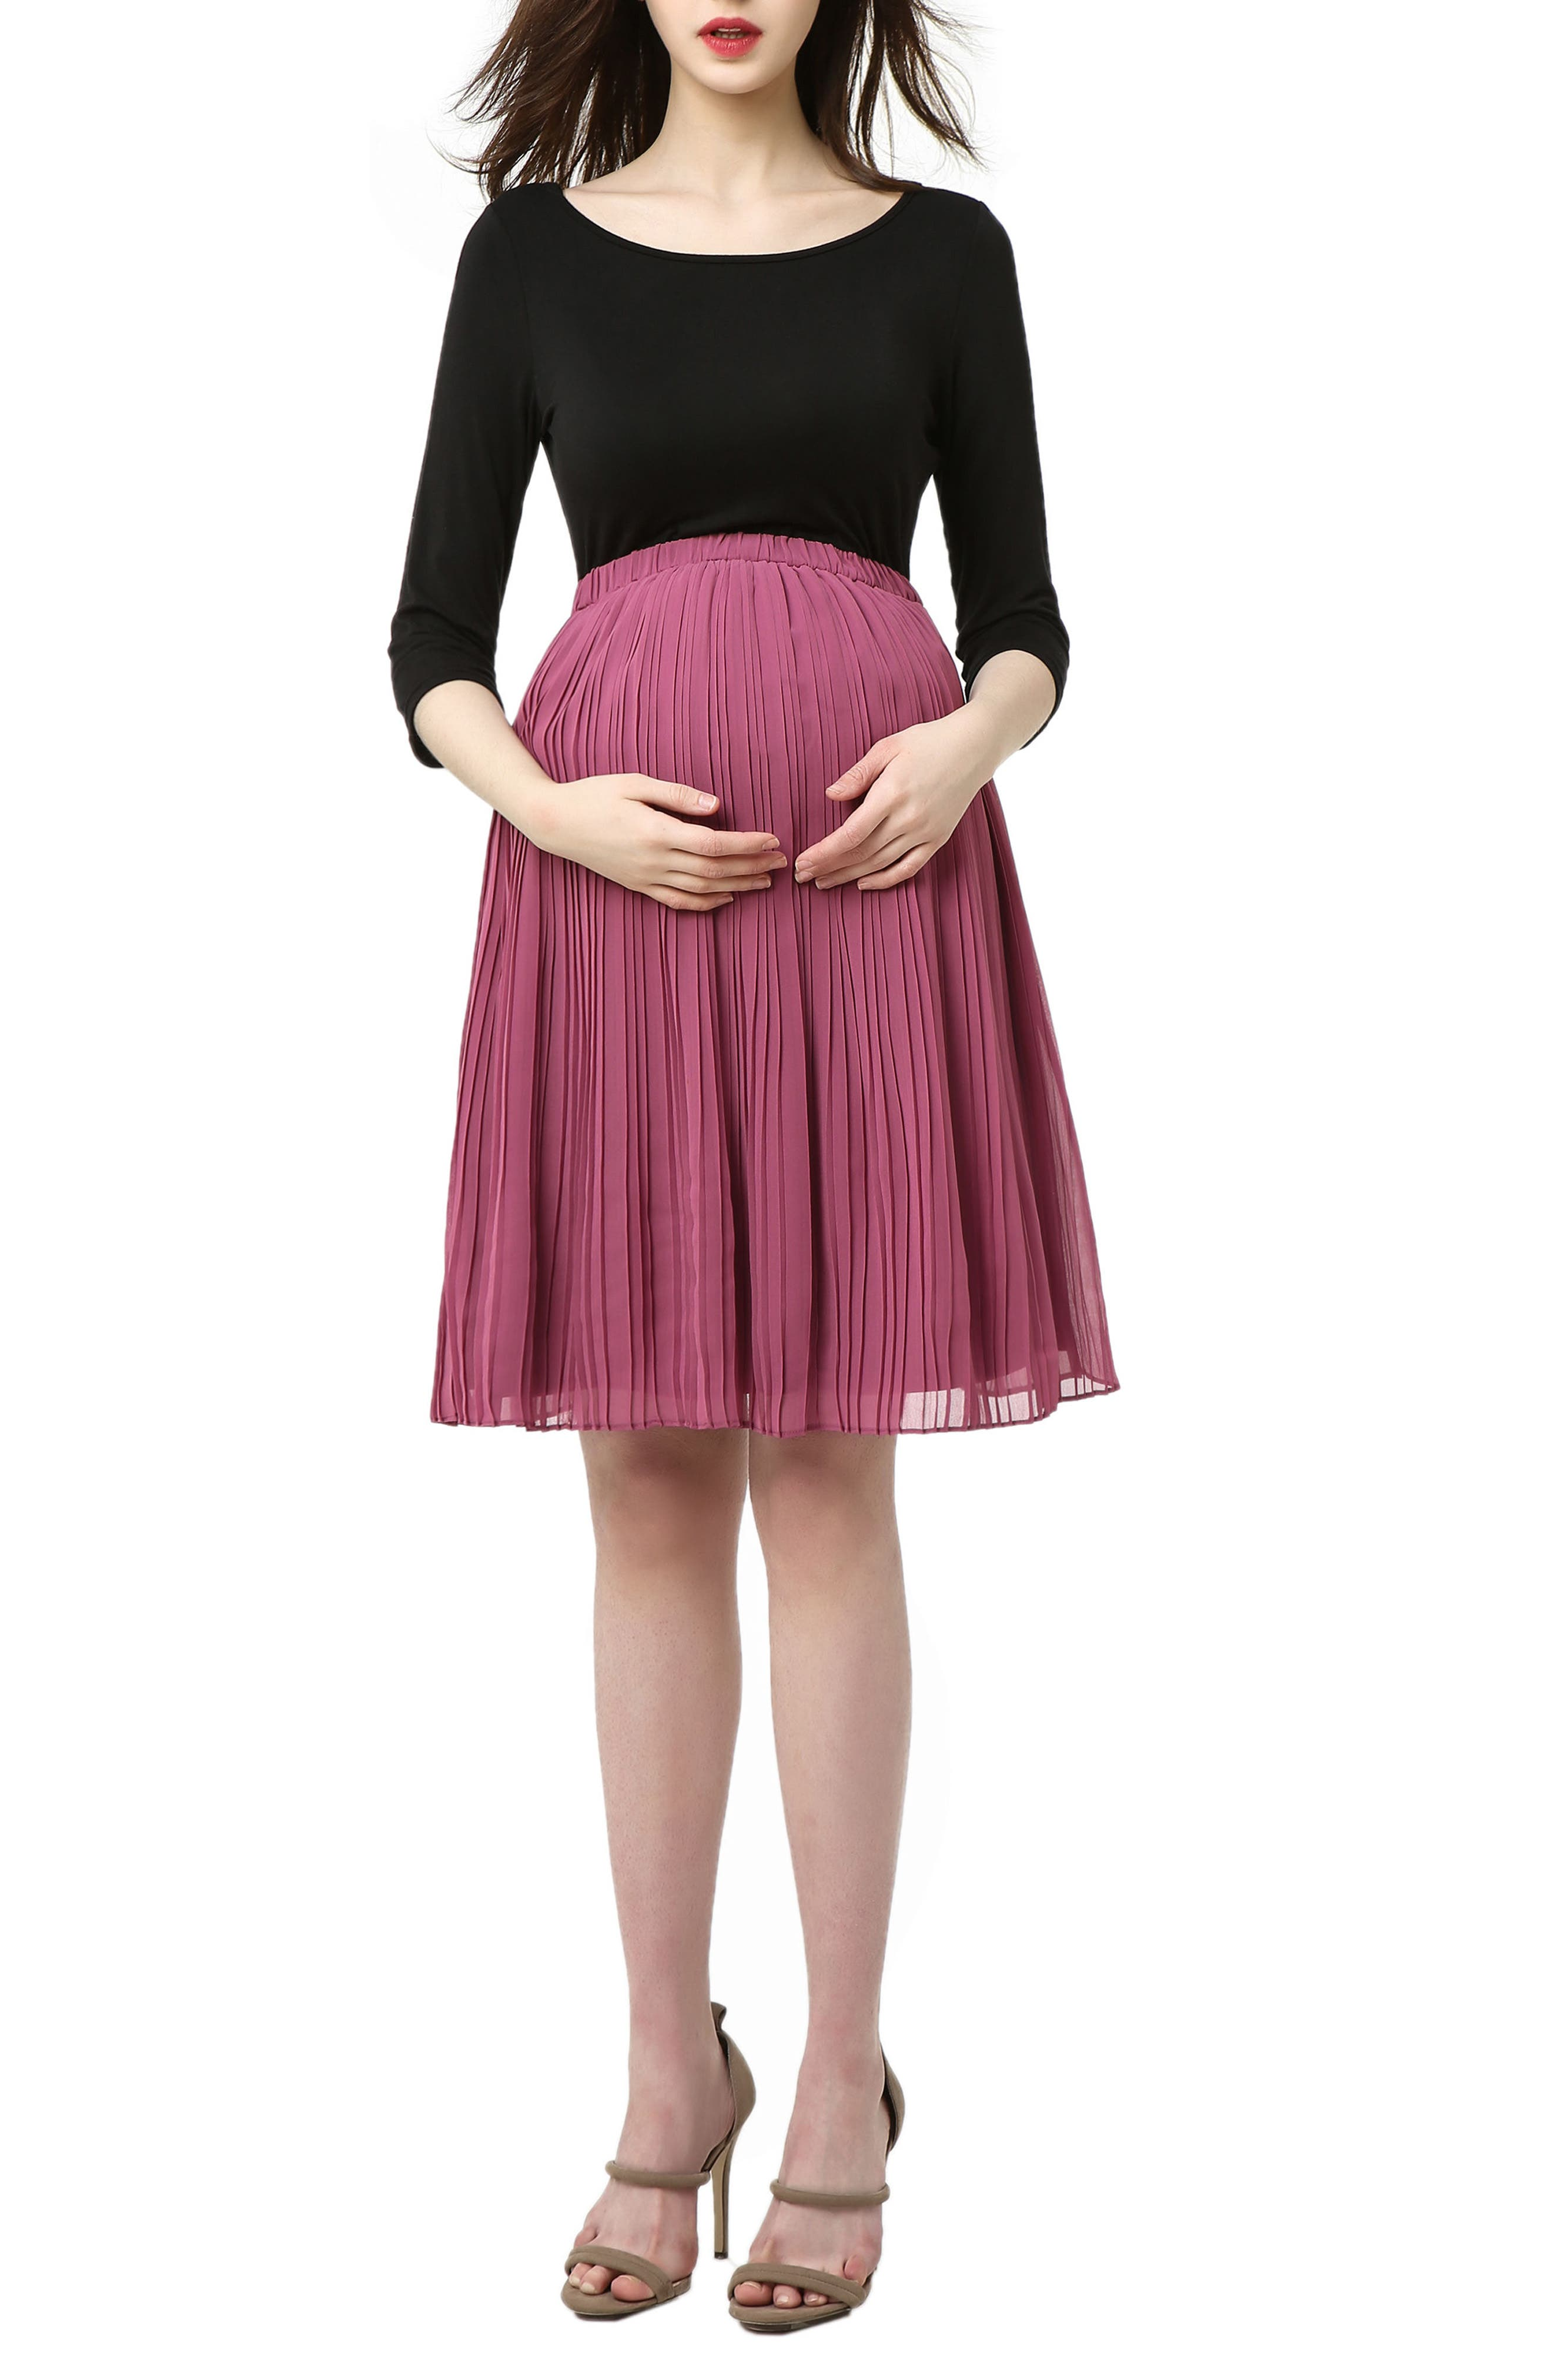 Marie Colorblock Pleat Skirt Maternity Dress,                         Main,                         color, BLACK